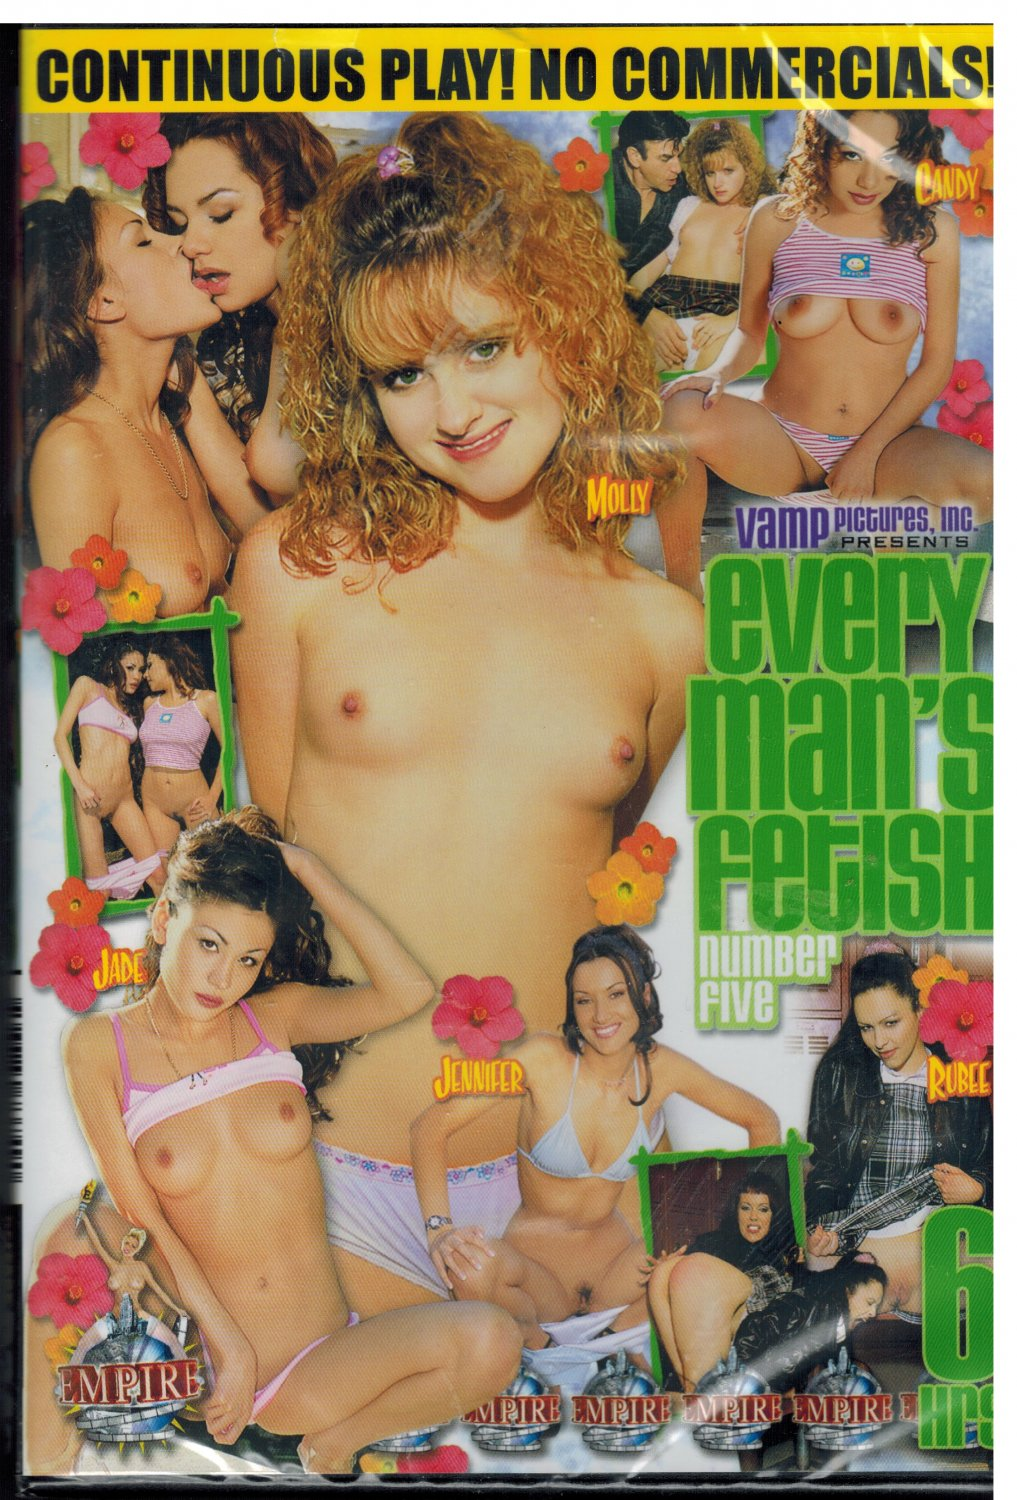 Every Man's Fetish Number Five All Sex Legal Teen Buy 3 Get 1 Free